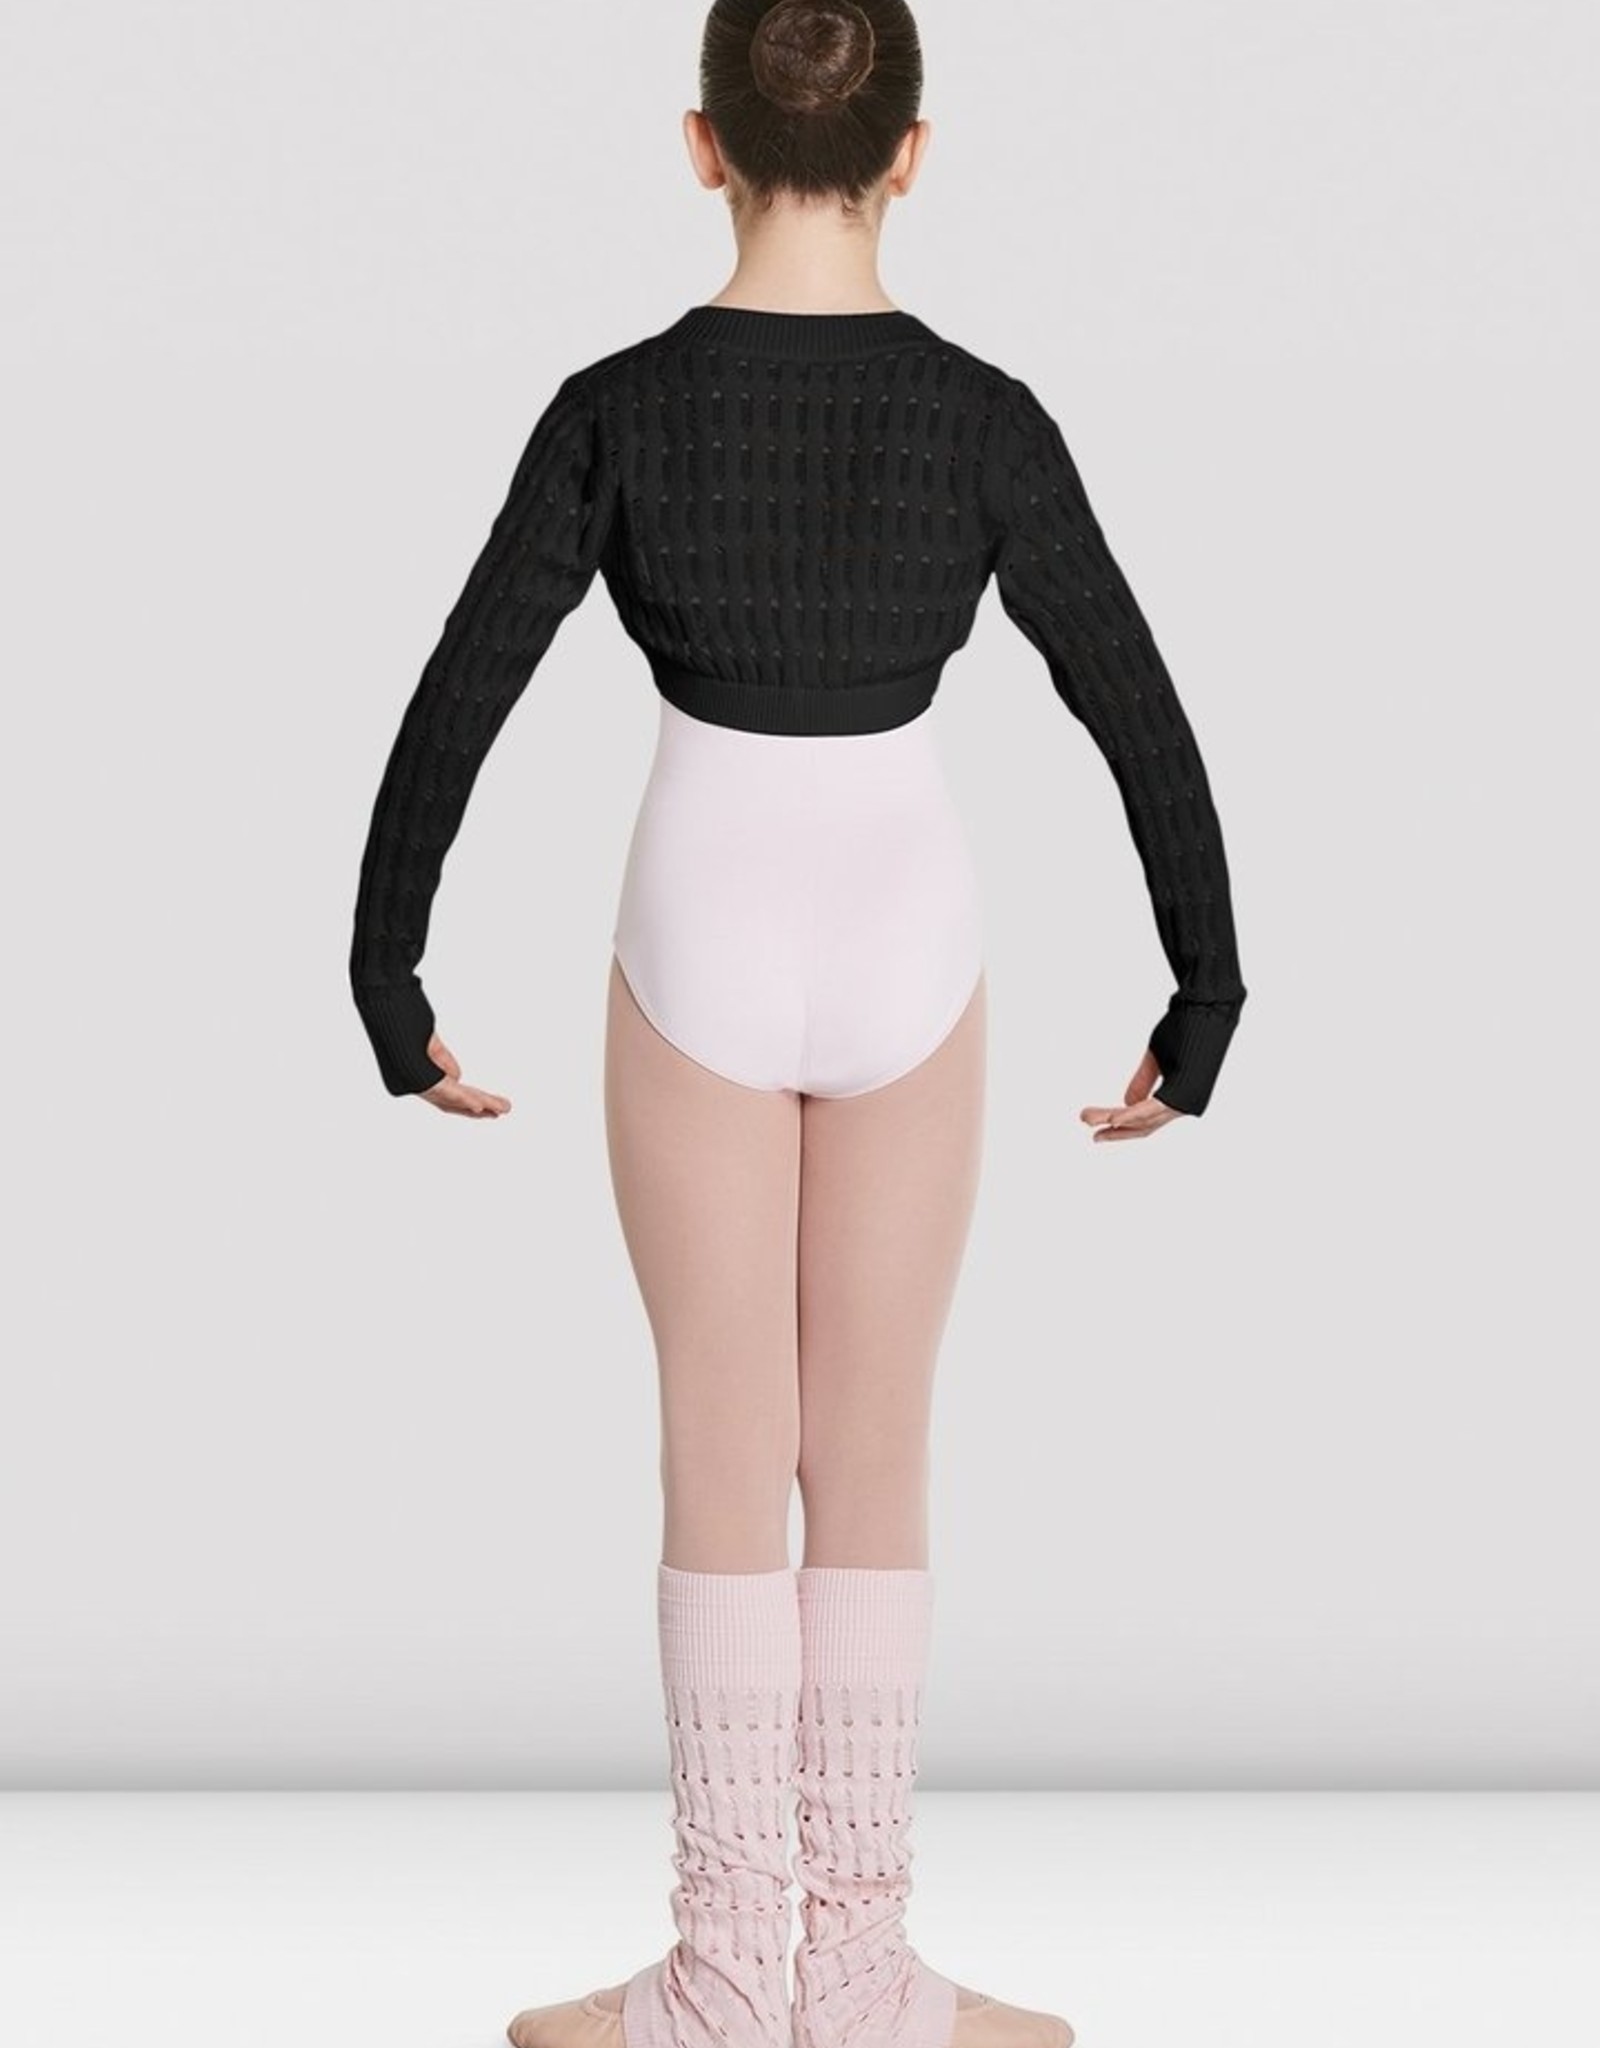 BLOCH ROESIA KNITTED LONG SLEEVE SHRUG (CZ5519)